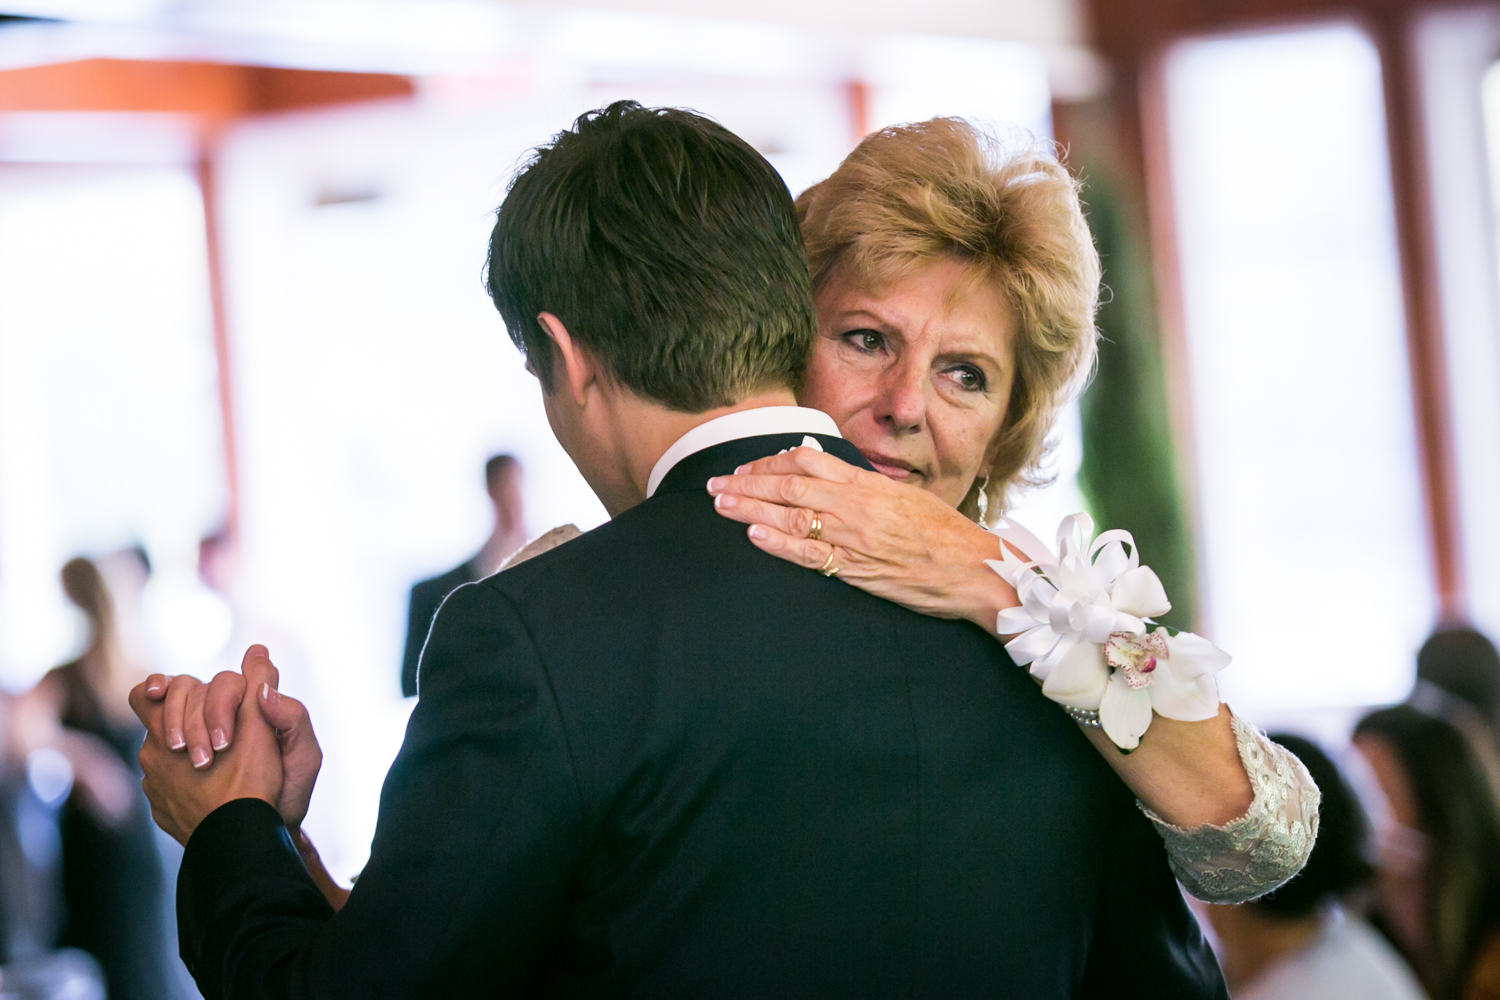 Mother and groom dancing at a Loeb Boathouse wedding in Central Park